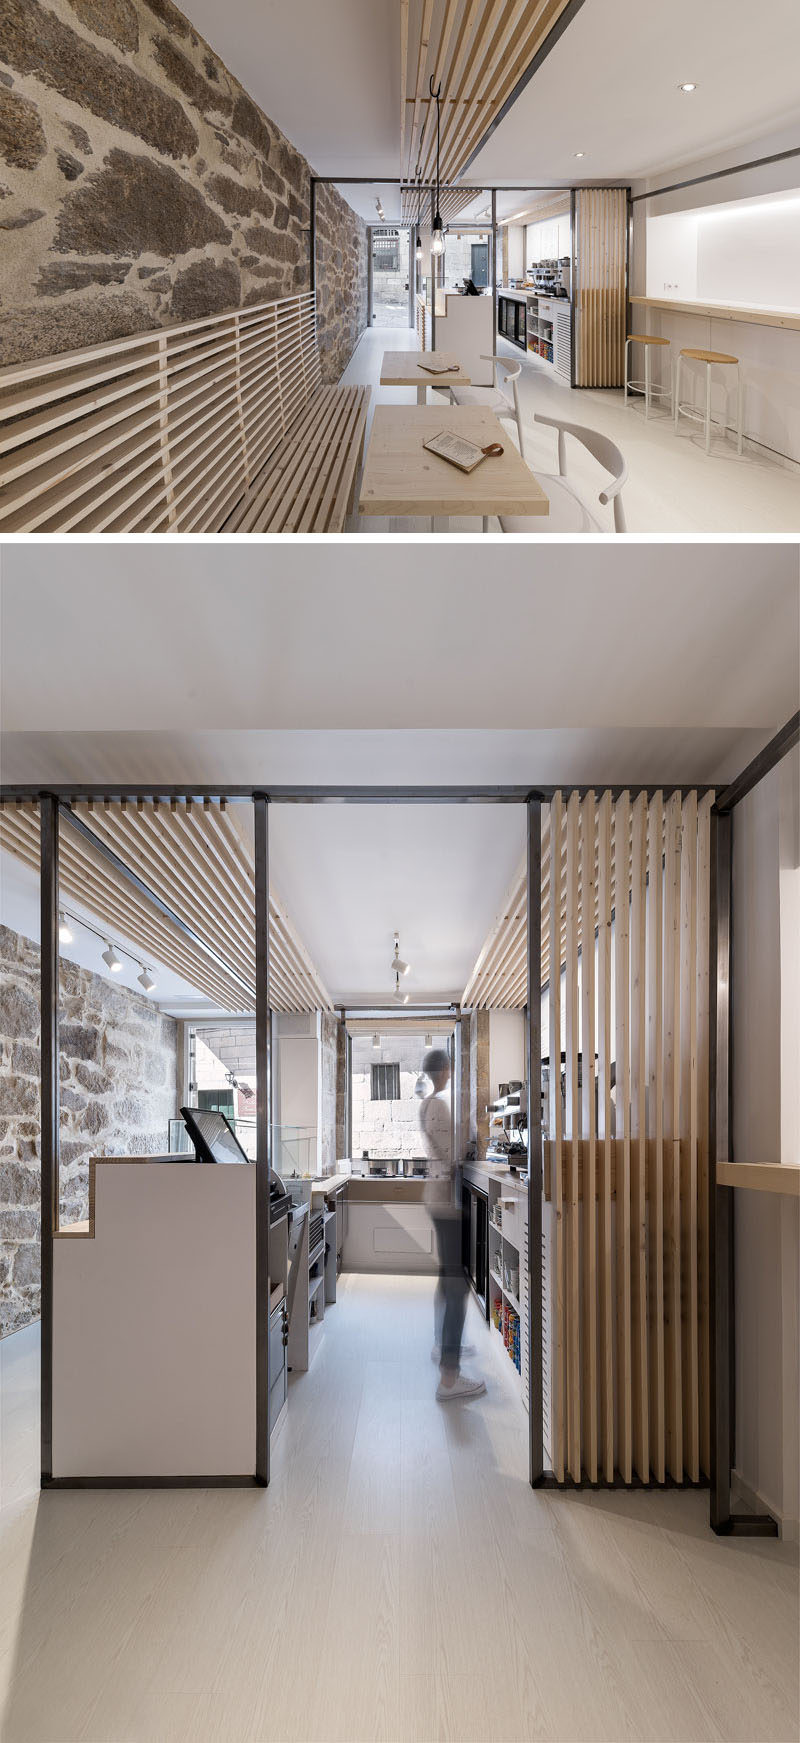 Erbalunga estudio have designed a creperie in Spain that combines original old stone, and new modern design elements. #Creperie #Cafe #RetailDesign #WoodSlats